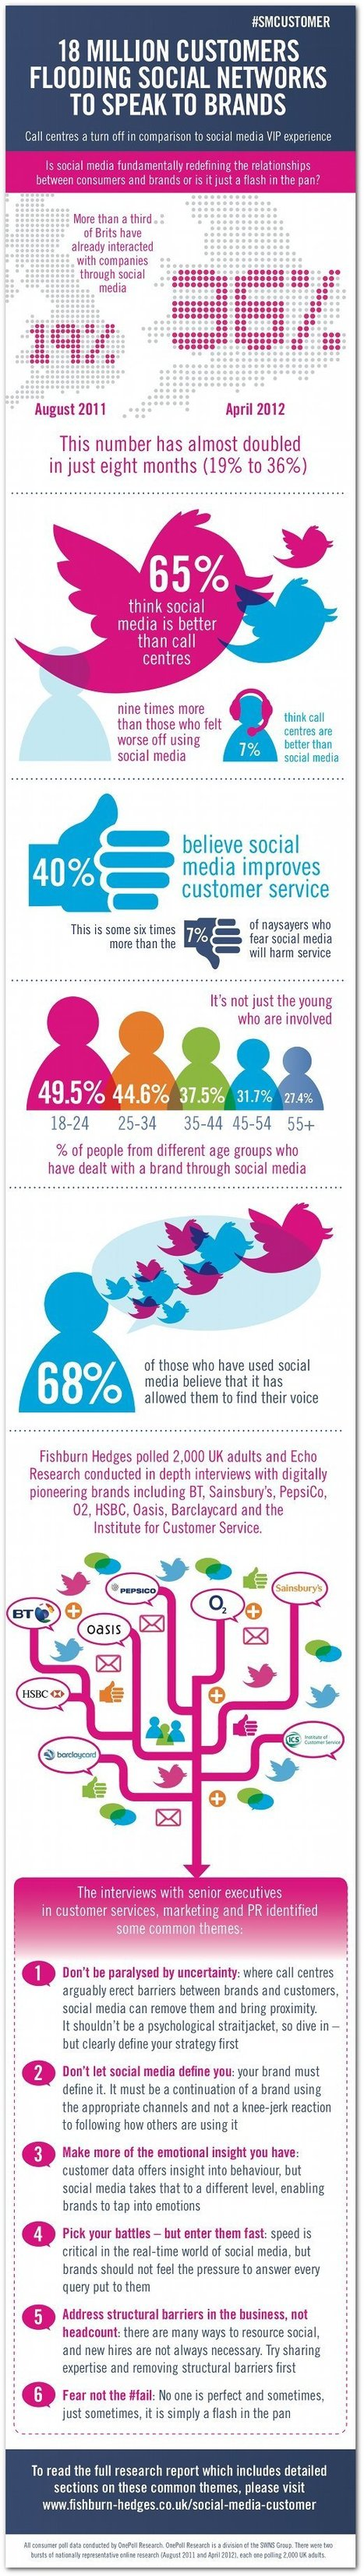 UK STUDY: Social Media Changing Customer Service | Curation, Social Business and Beyond | Scoop.it